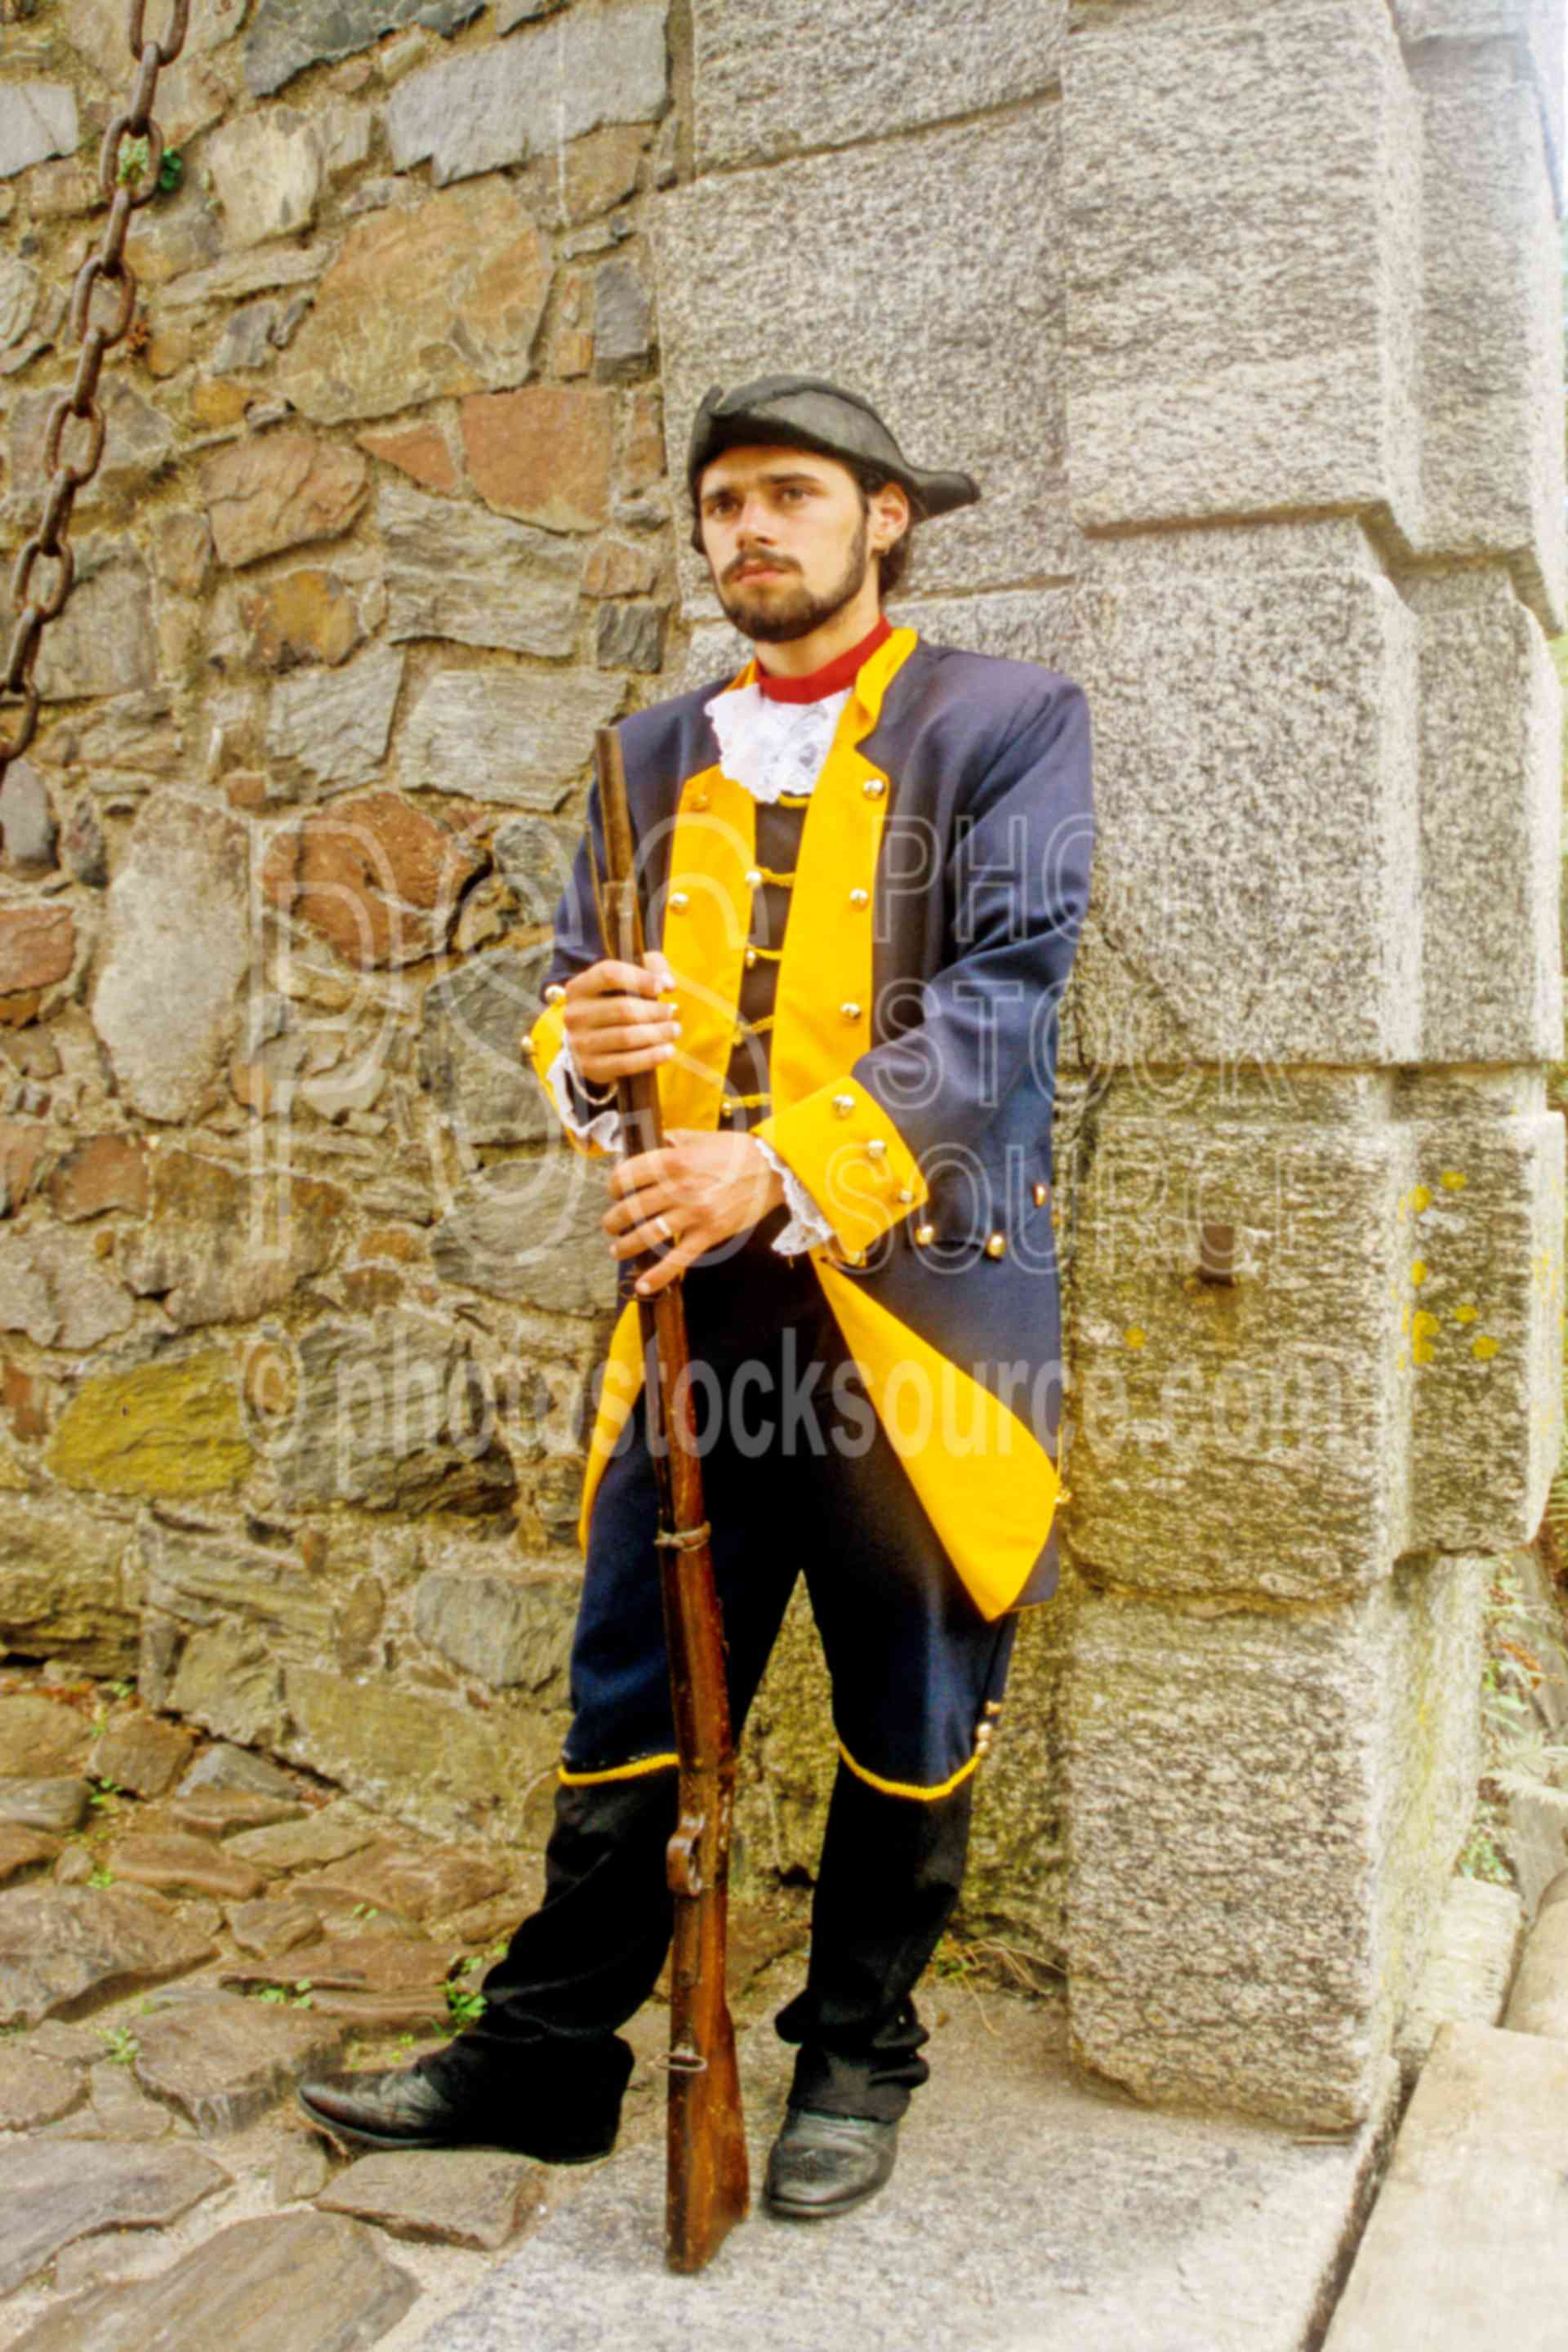 Colonial Soldier,gate,soldier,guns,military,uniform